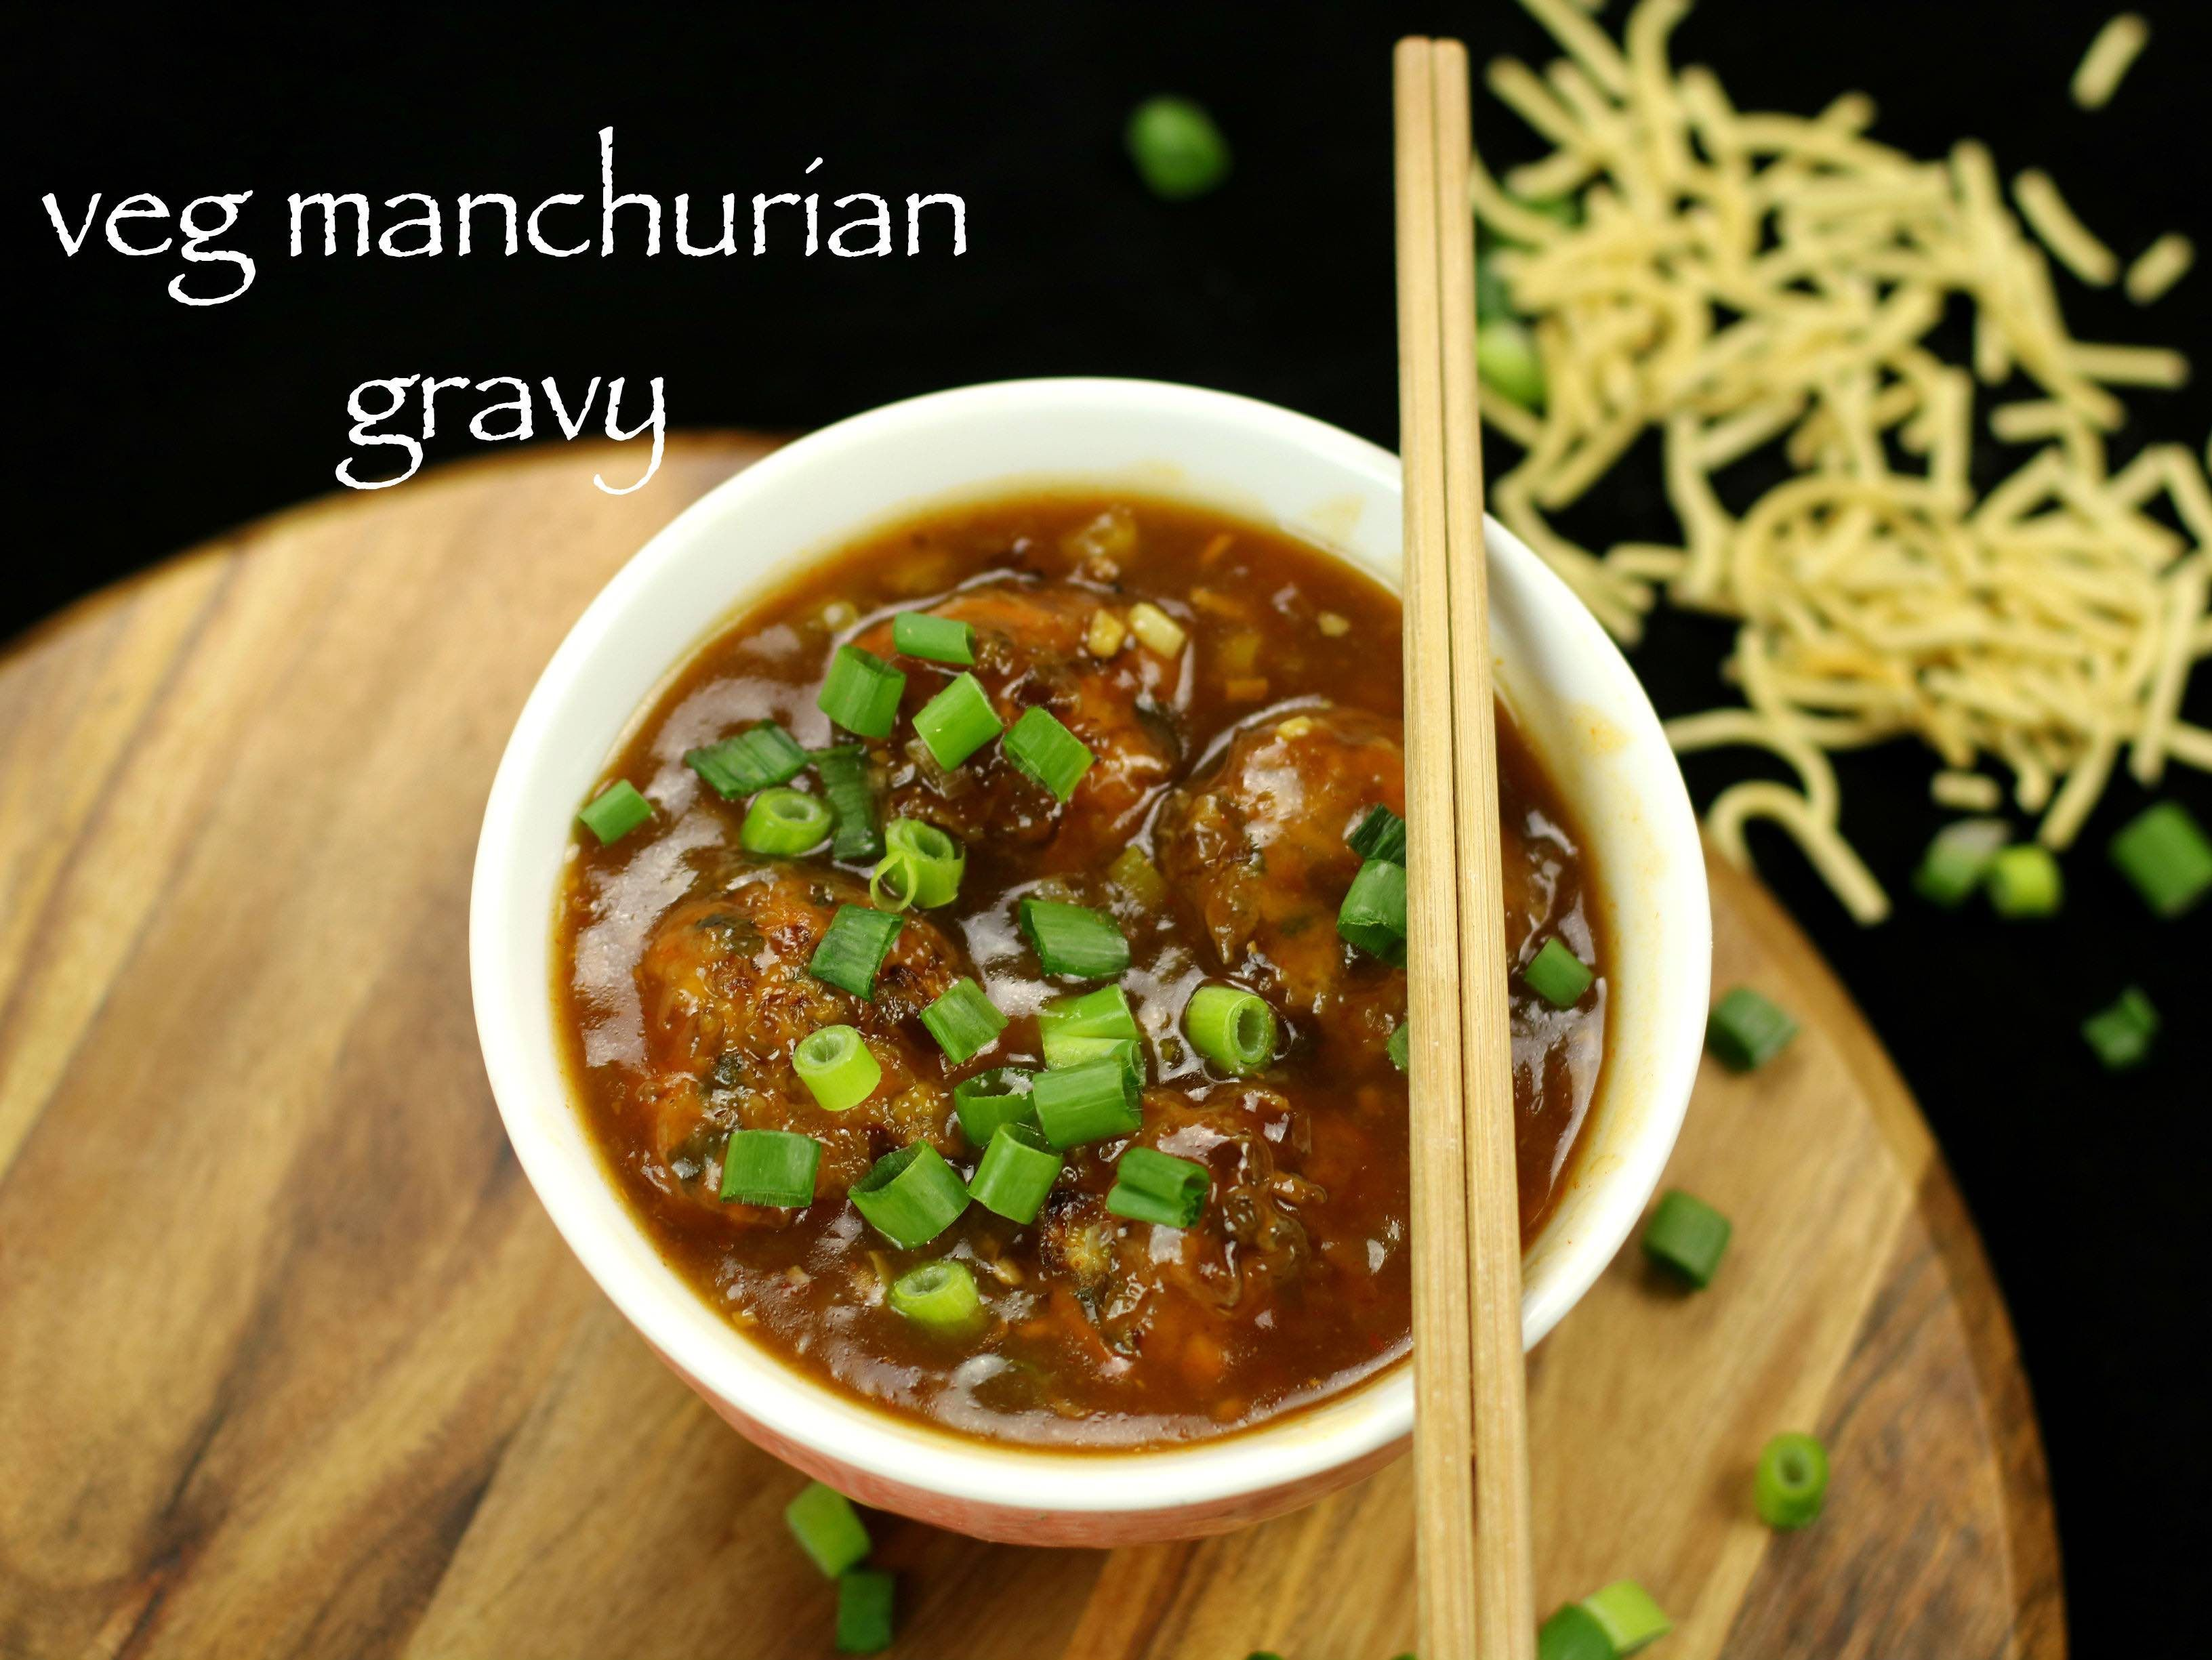 Veg manchurian gravy recipe vegetable manchurian gravy recipe with veg manchurian gravy recipe vegetable manchurian gravy recipe with step by step photovideo forumfinder Image collections